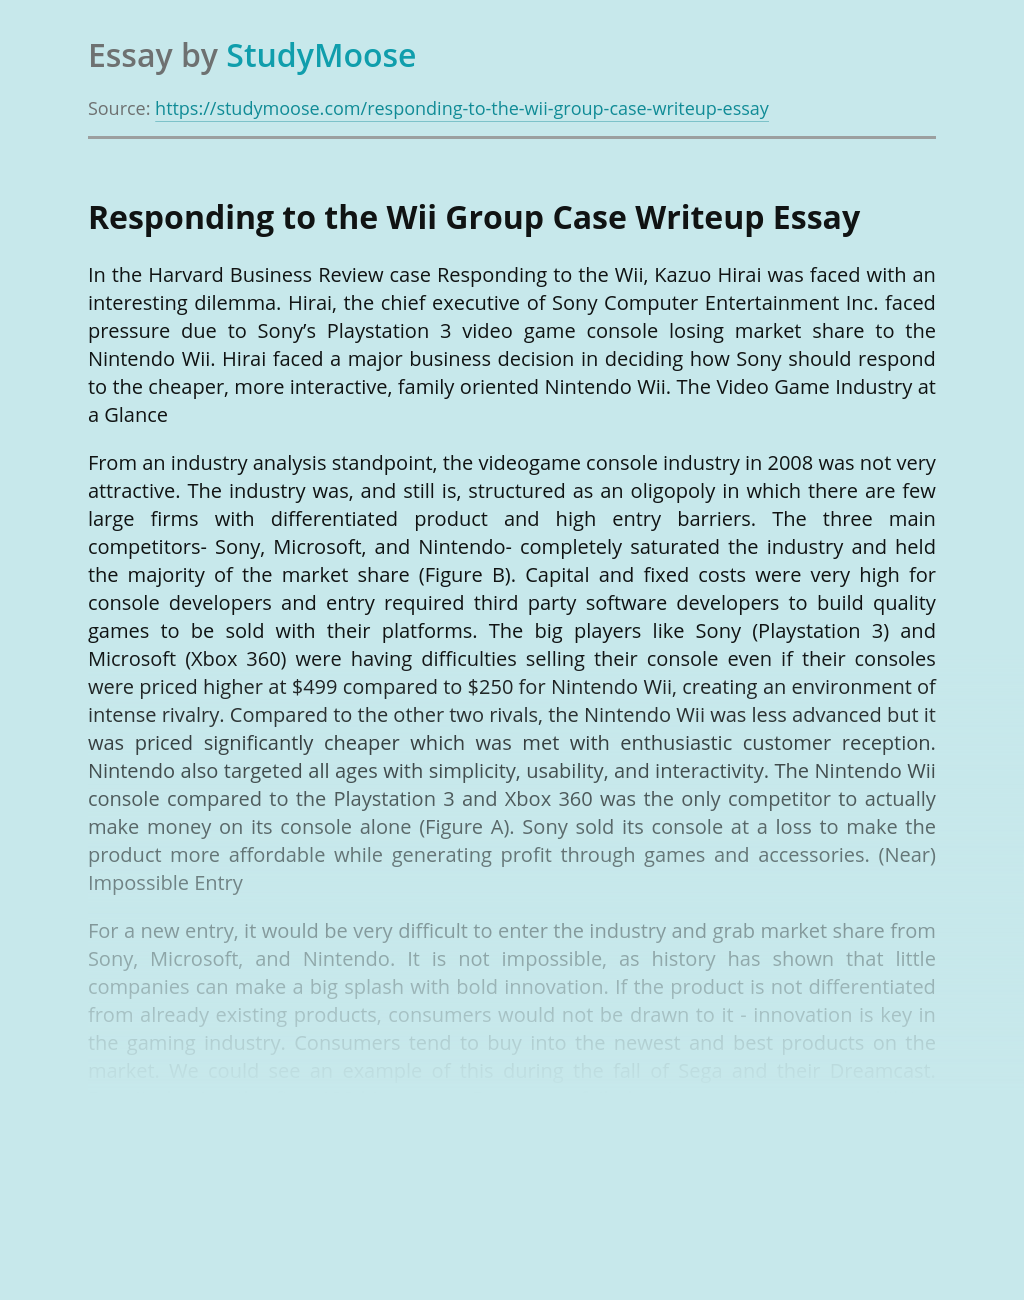 Responding to the Wii Group Case Writeup